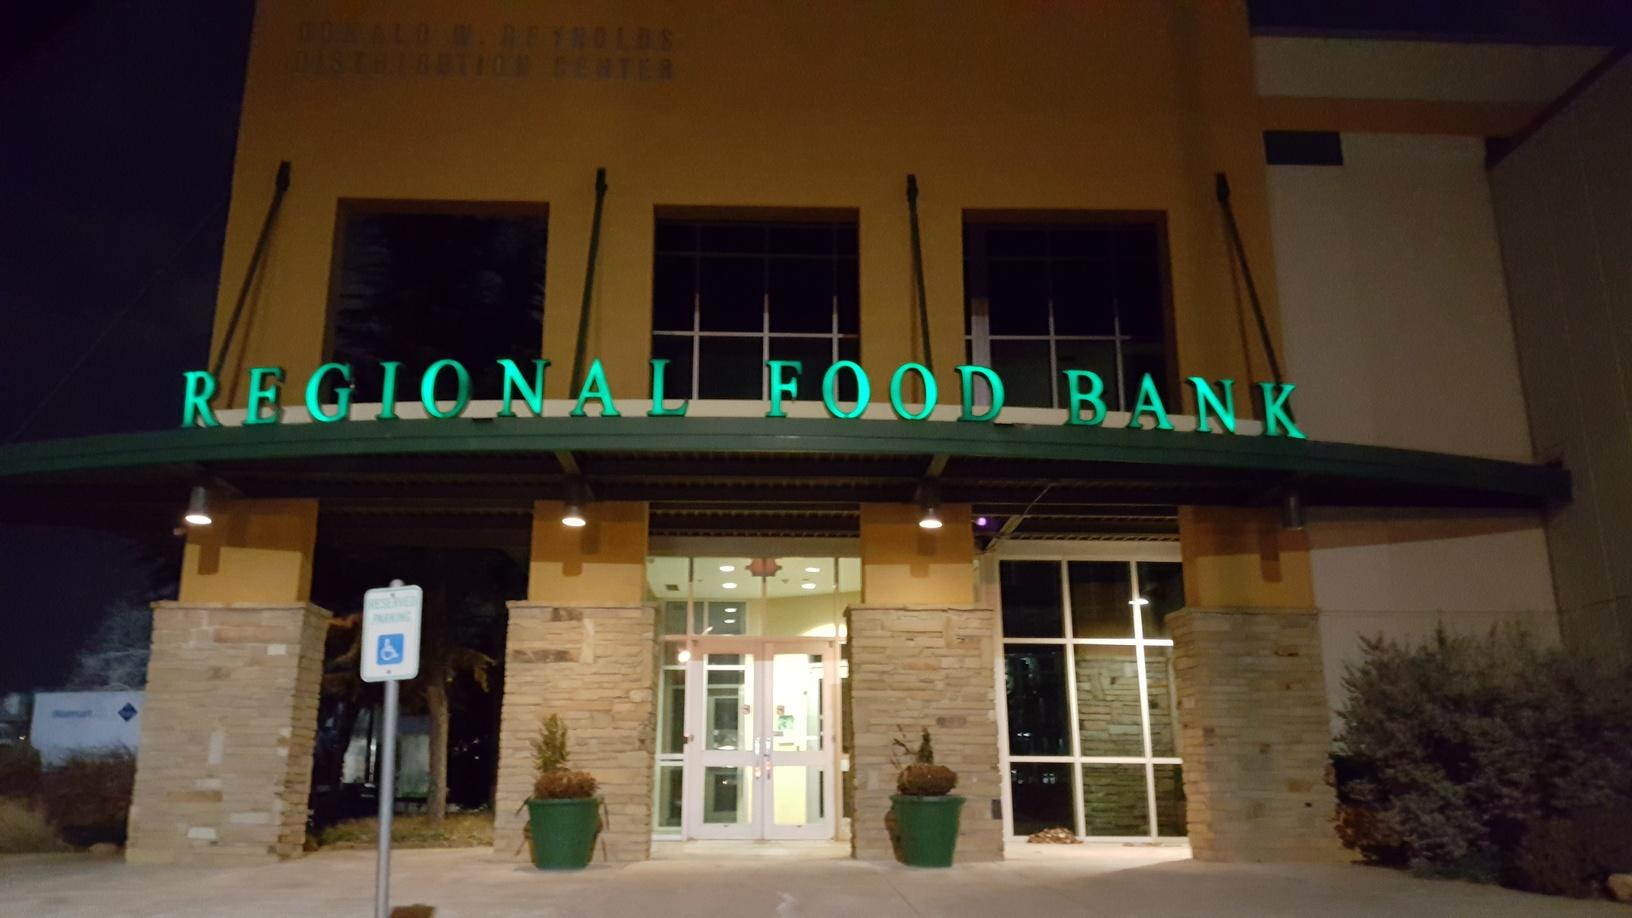 Visit www.regionalfoodbank.org for more information on how you can help give back to OKC